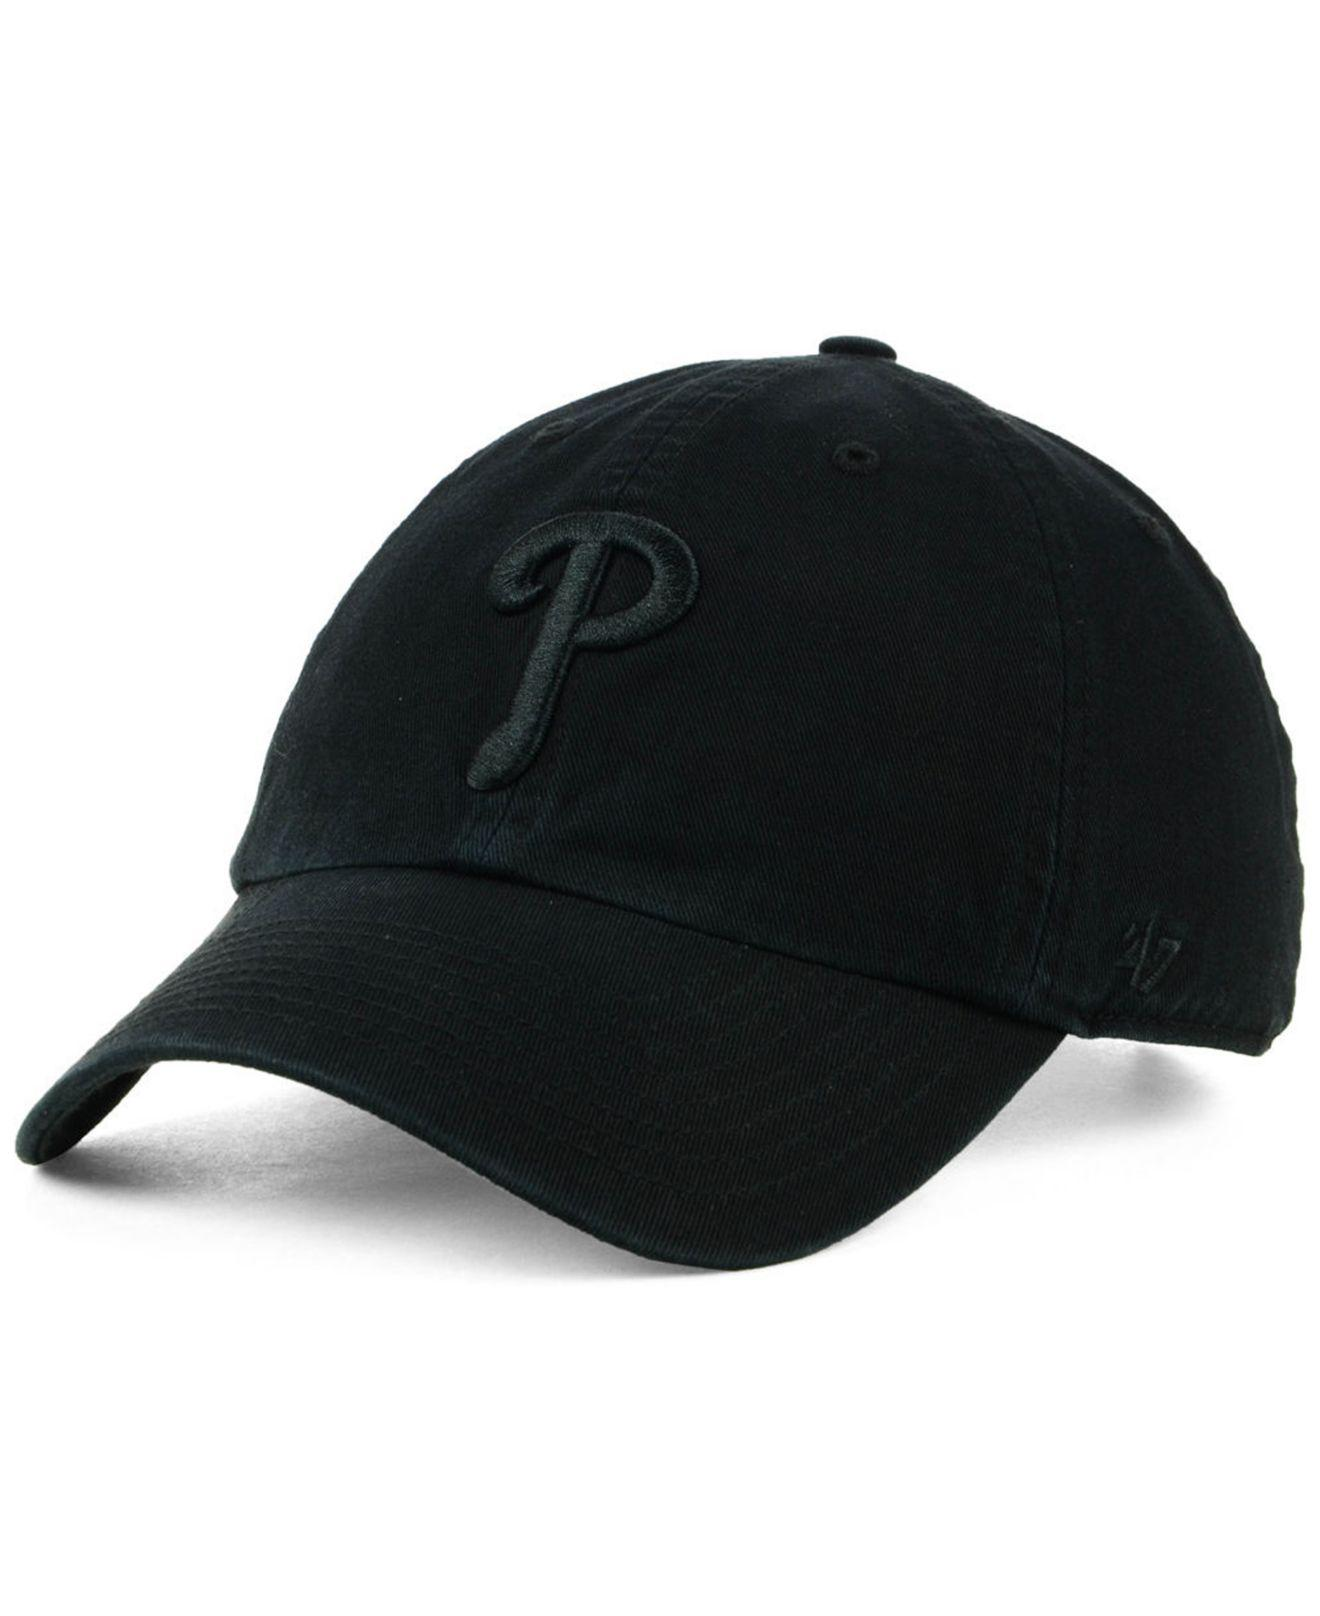 Lyst - 47 Brand Philadelphia Phillies Black On Black Clean Up Cap in ... eb513f9dd887